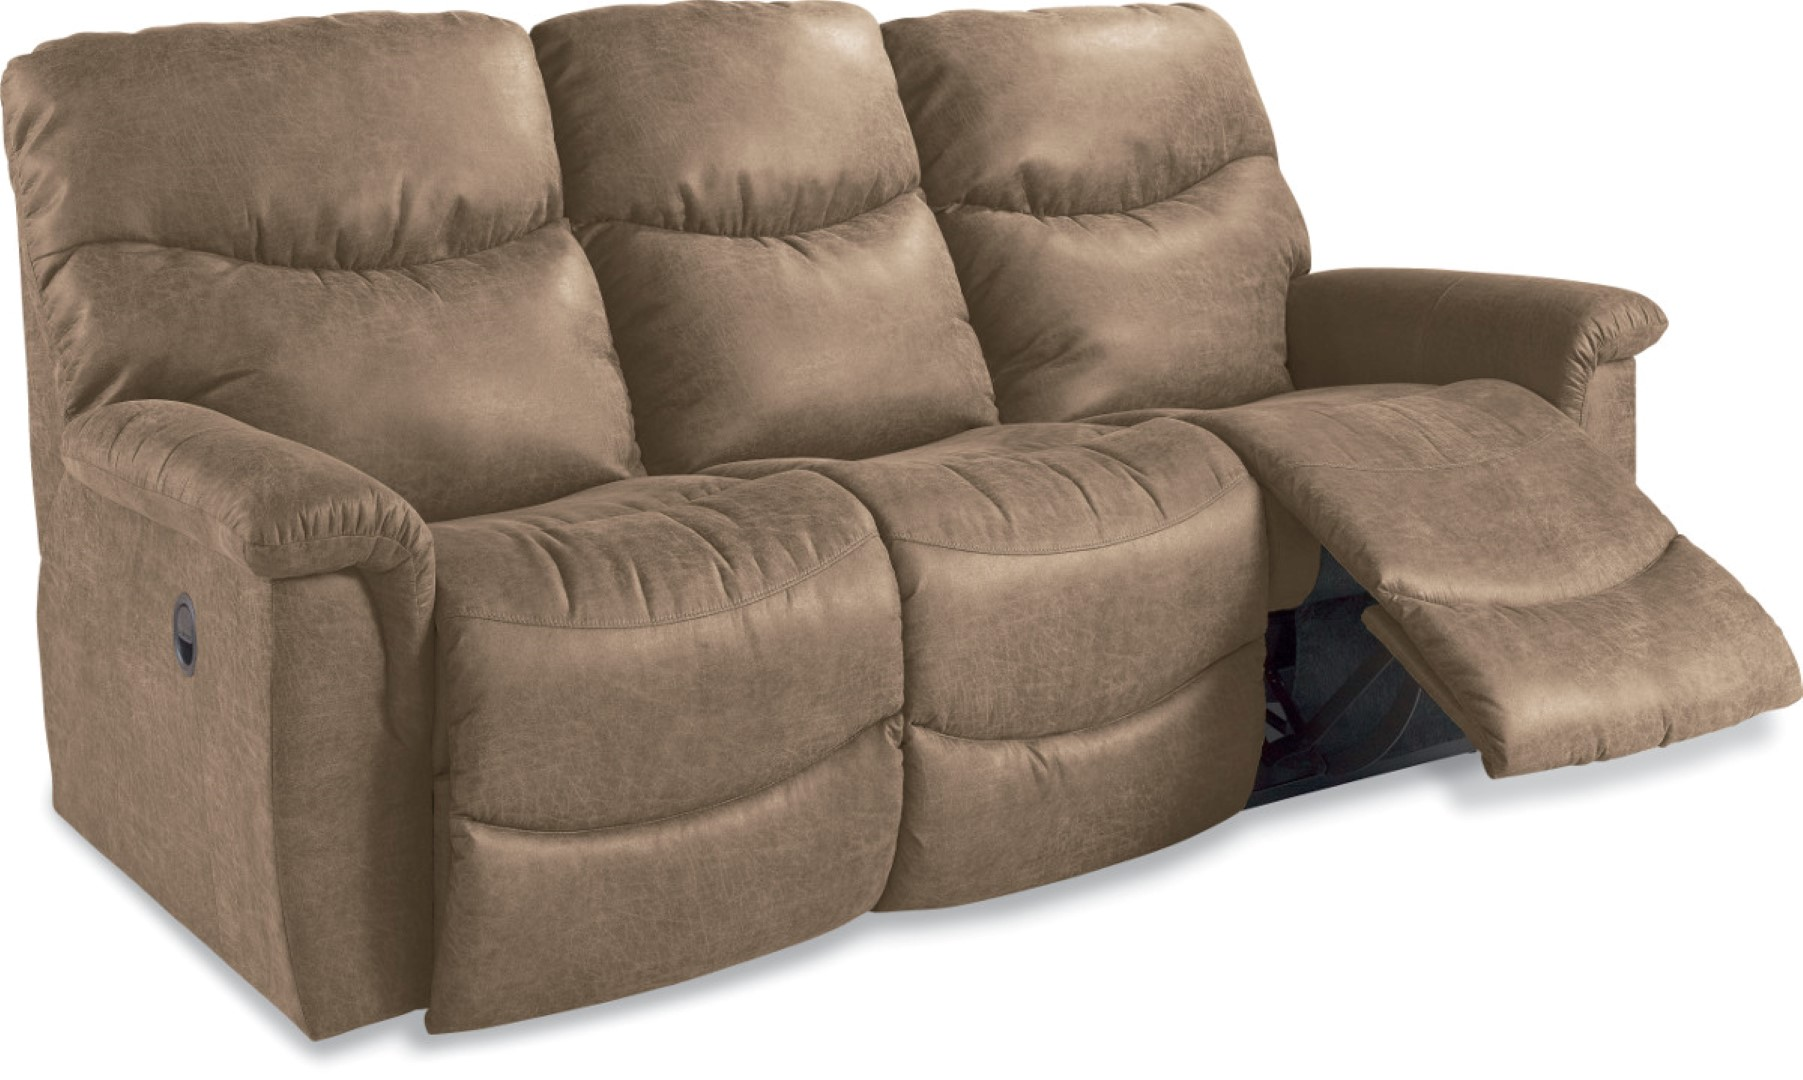 La-Z-Boy James Reclining Sofa - Town & Country